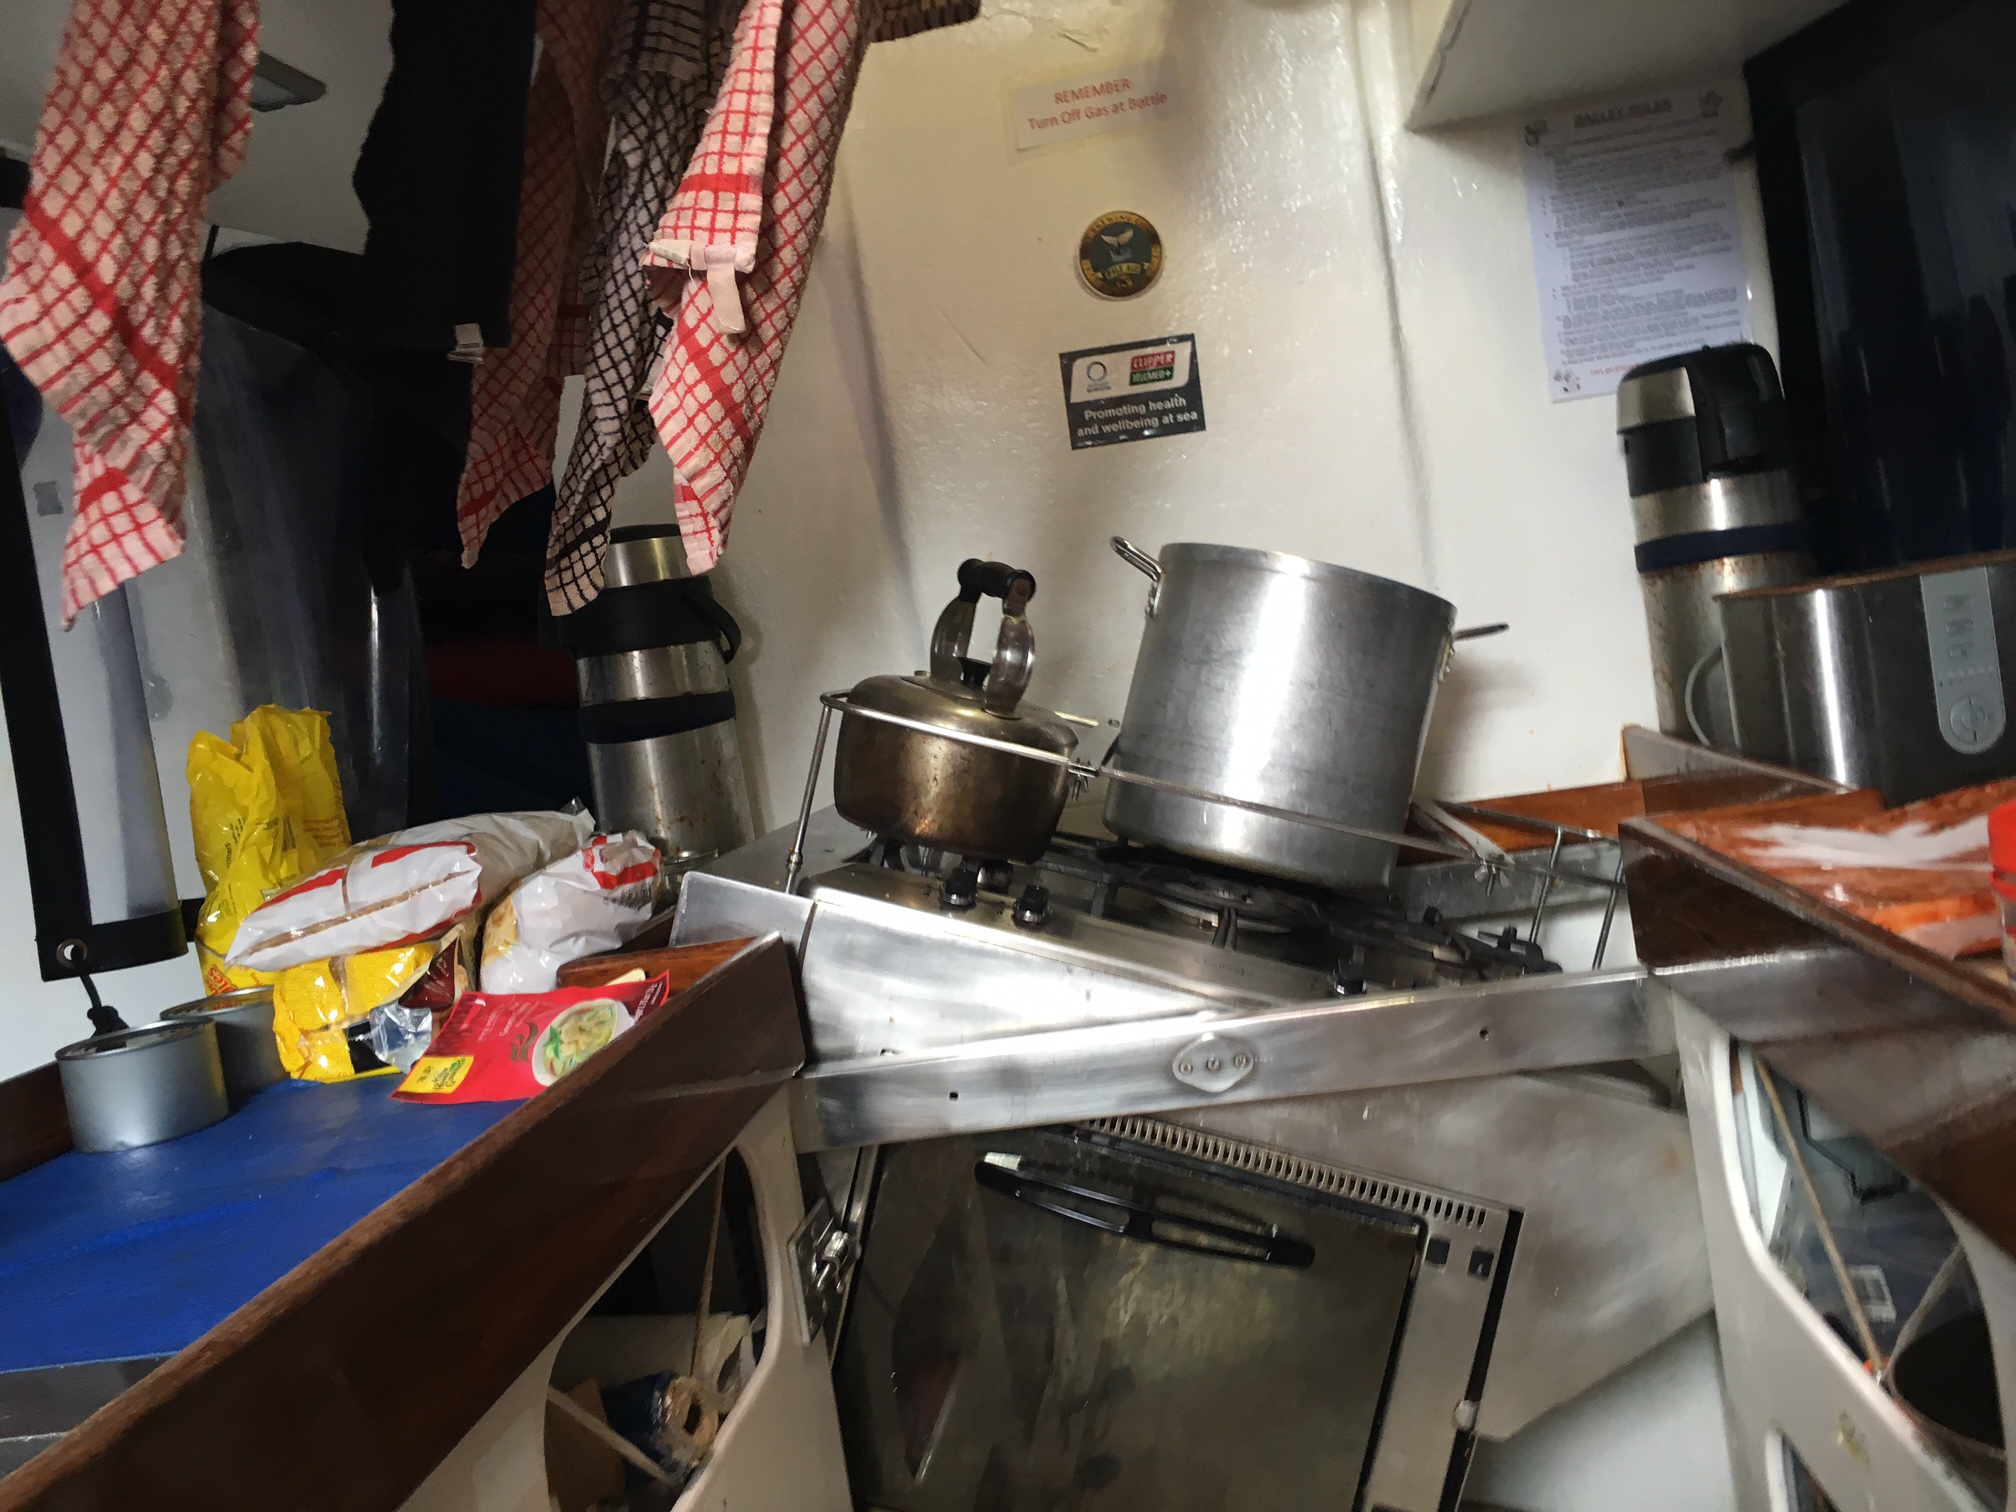 The galley - gimballed stove